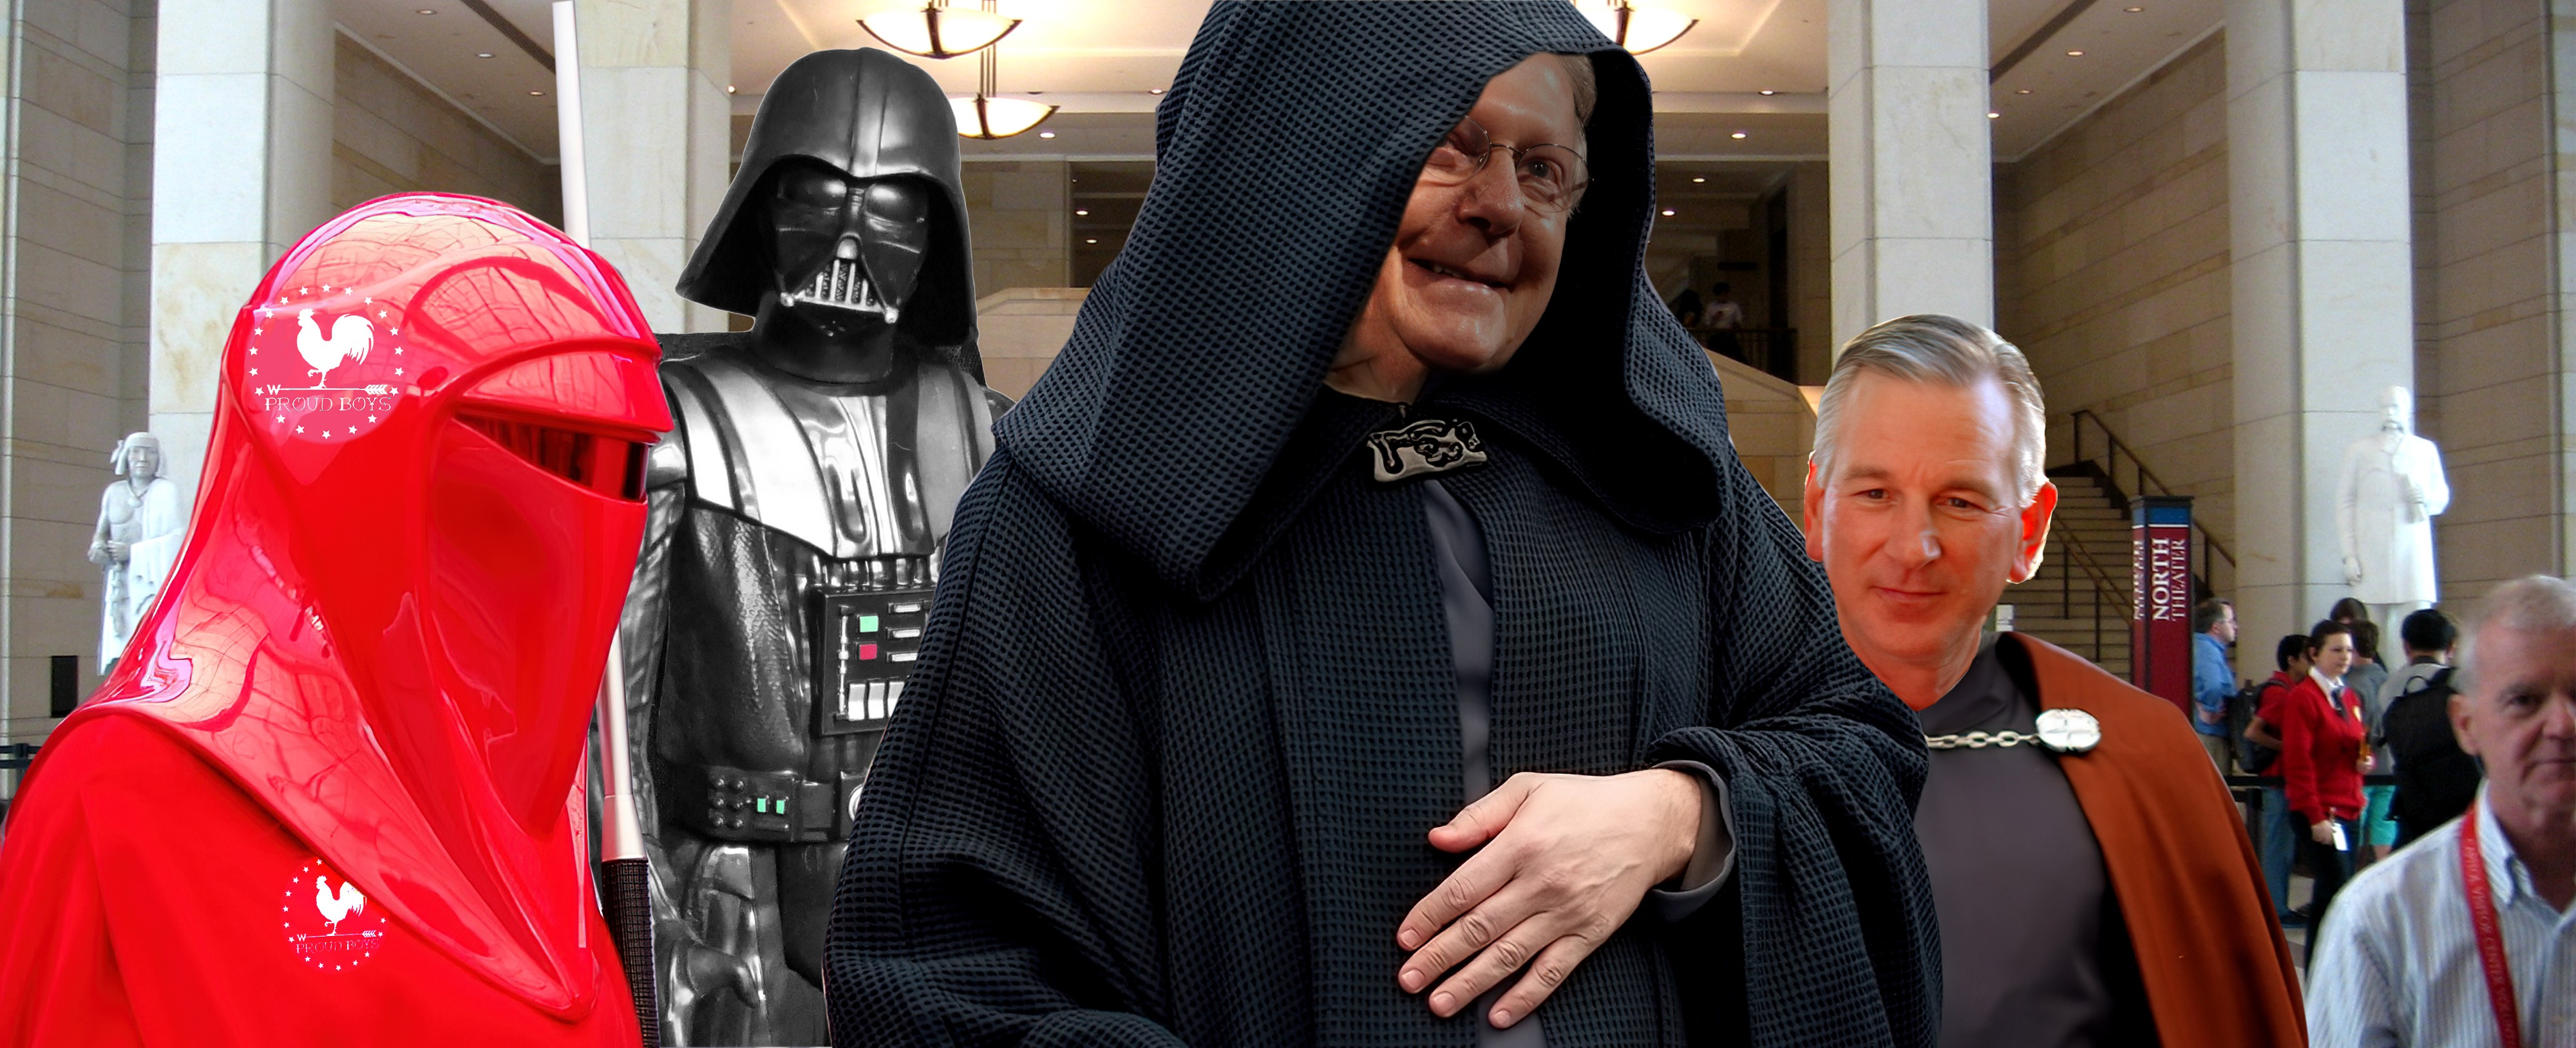 Mitch McConnell and Tommy Tuberville as Sith Lords